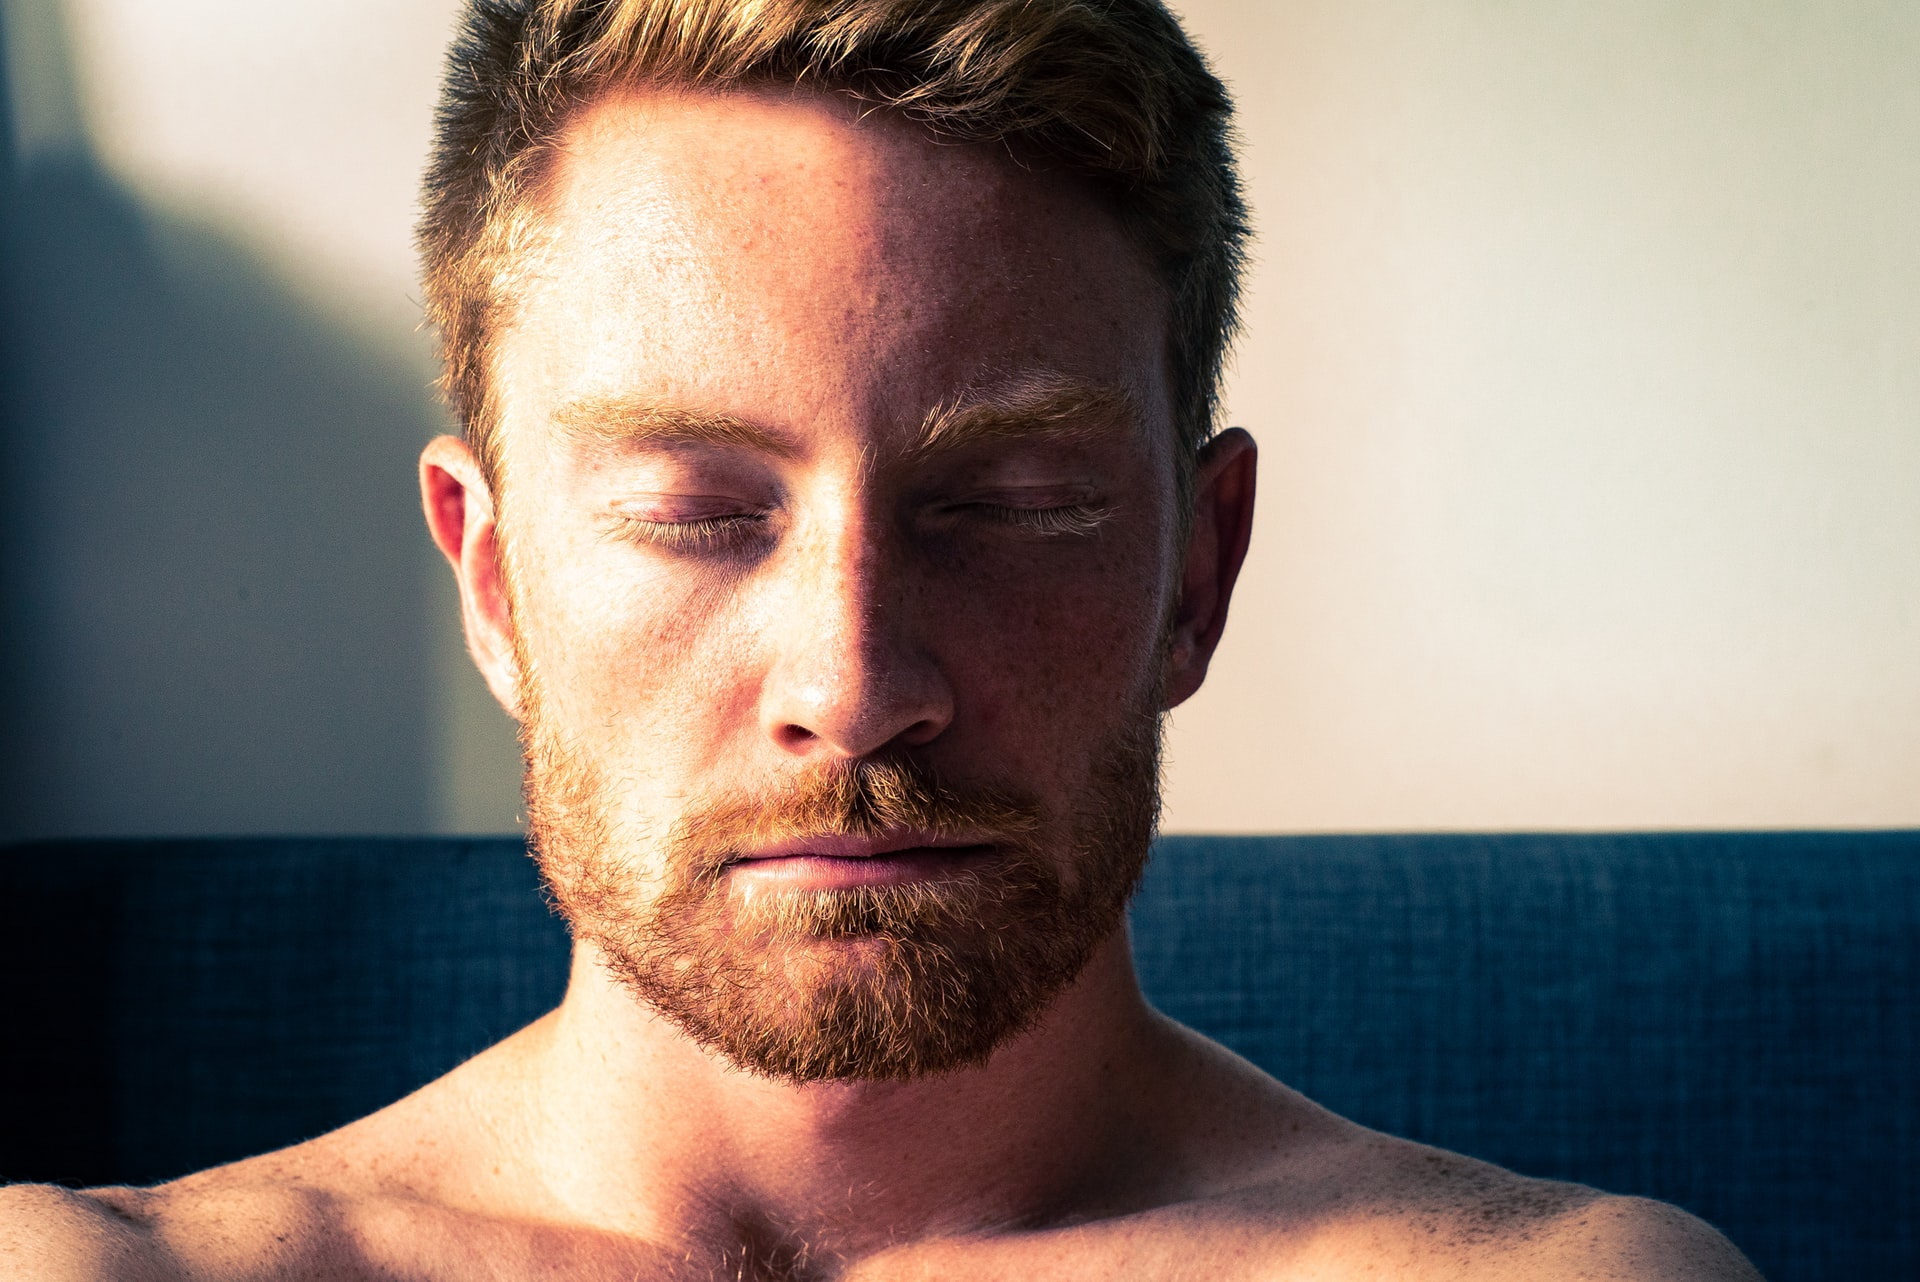 how to focus your mind and fall asleep